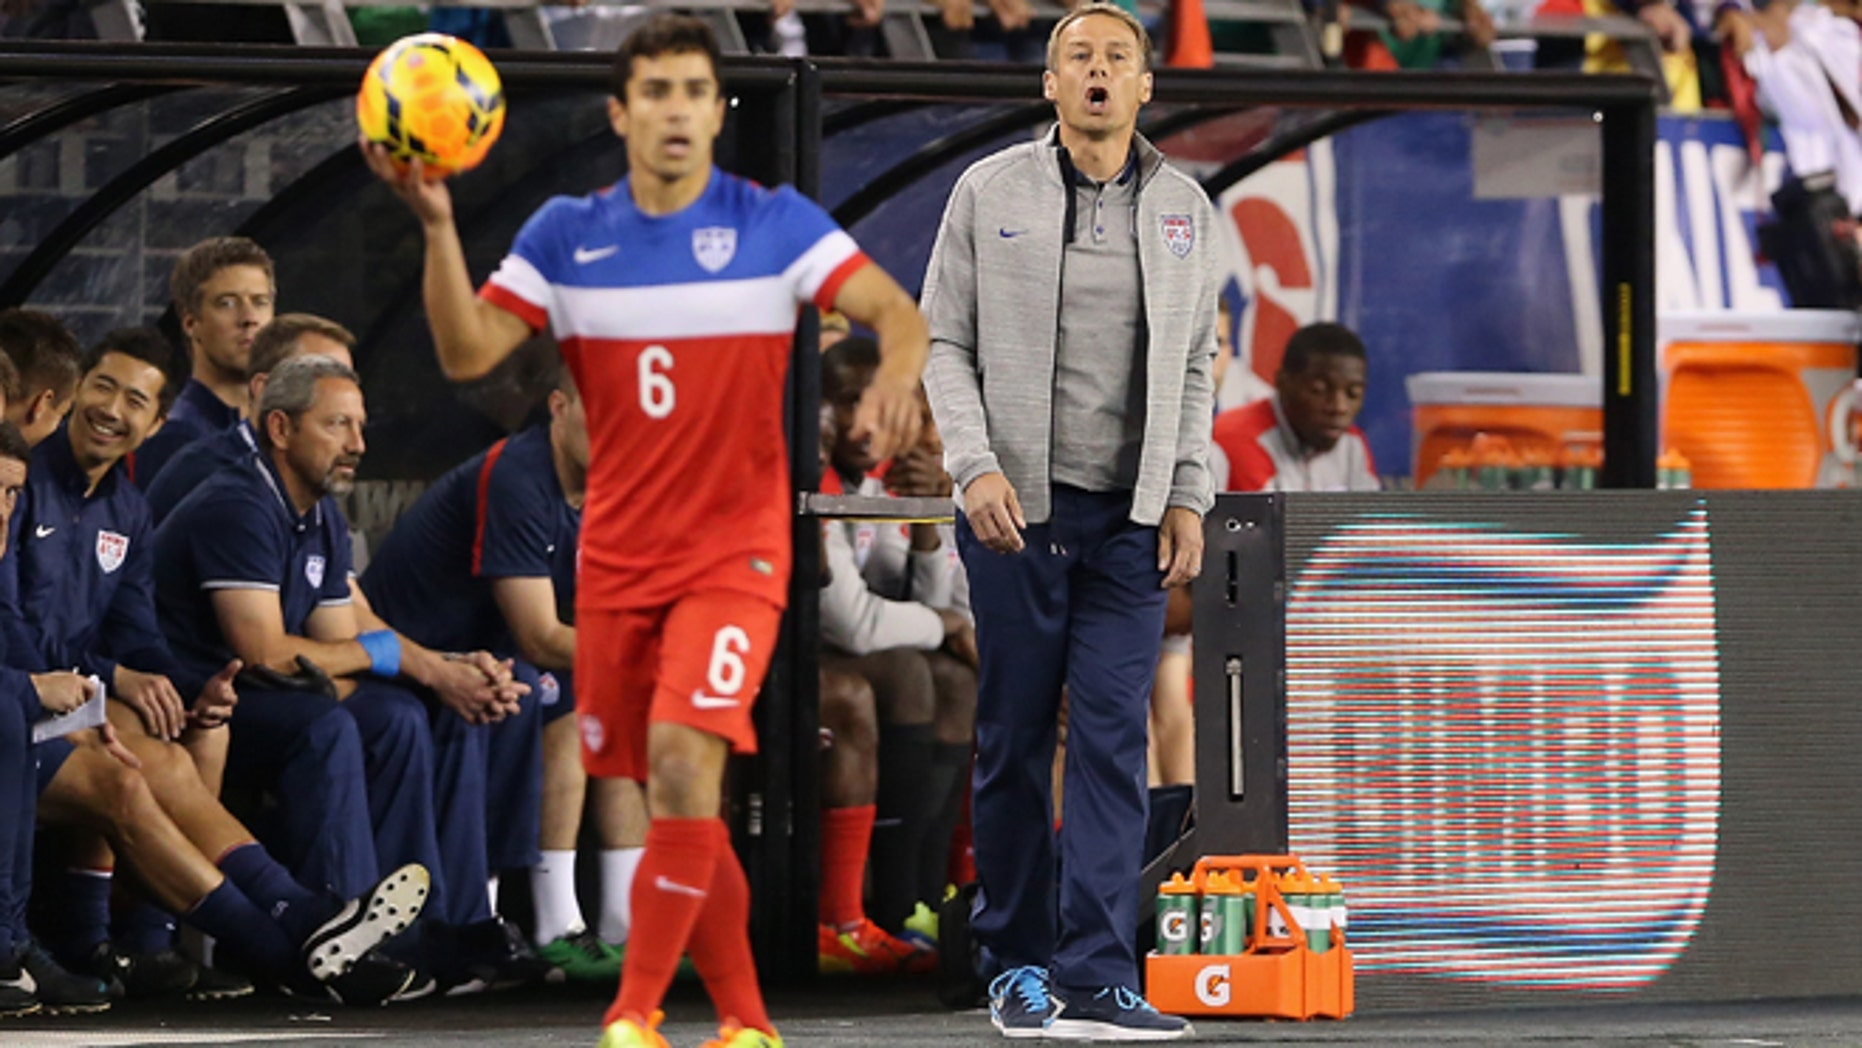 GLENDALE, AZ - APRIL 02:  Head coach Jurgen Klinsmann of USA reacts on the sidelines during the International Friendly against Meixco at University of Phoenix Stadium on April 2, 2014 in Glendale, Arizona. Mexico and USA played to a 2-2 tie.  (Photo by Christian Petersen/Getty Images) *** Local Caption *** Jurgen Klinsmann